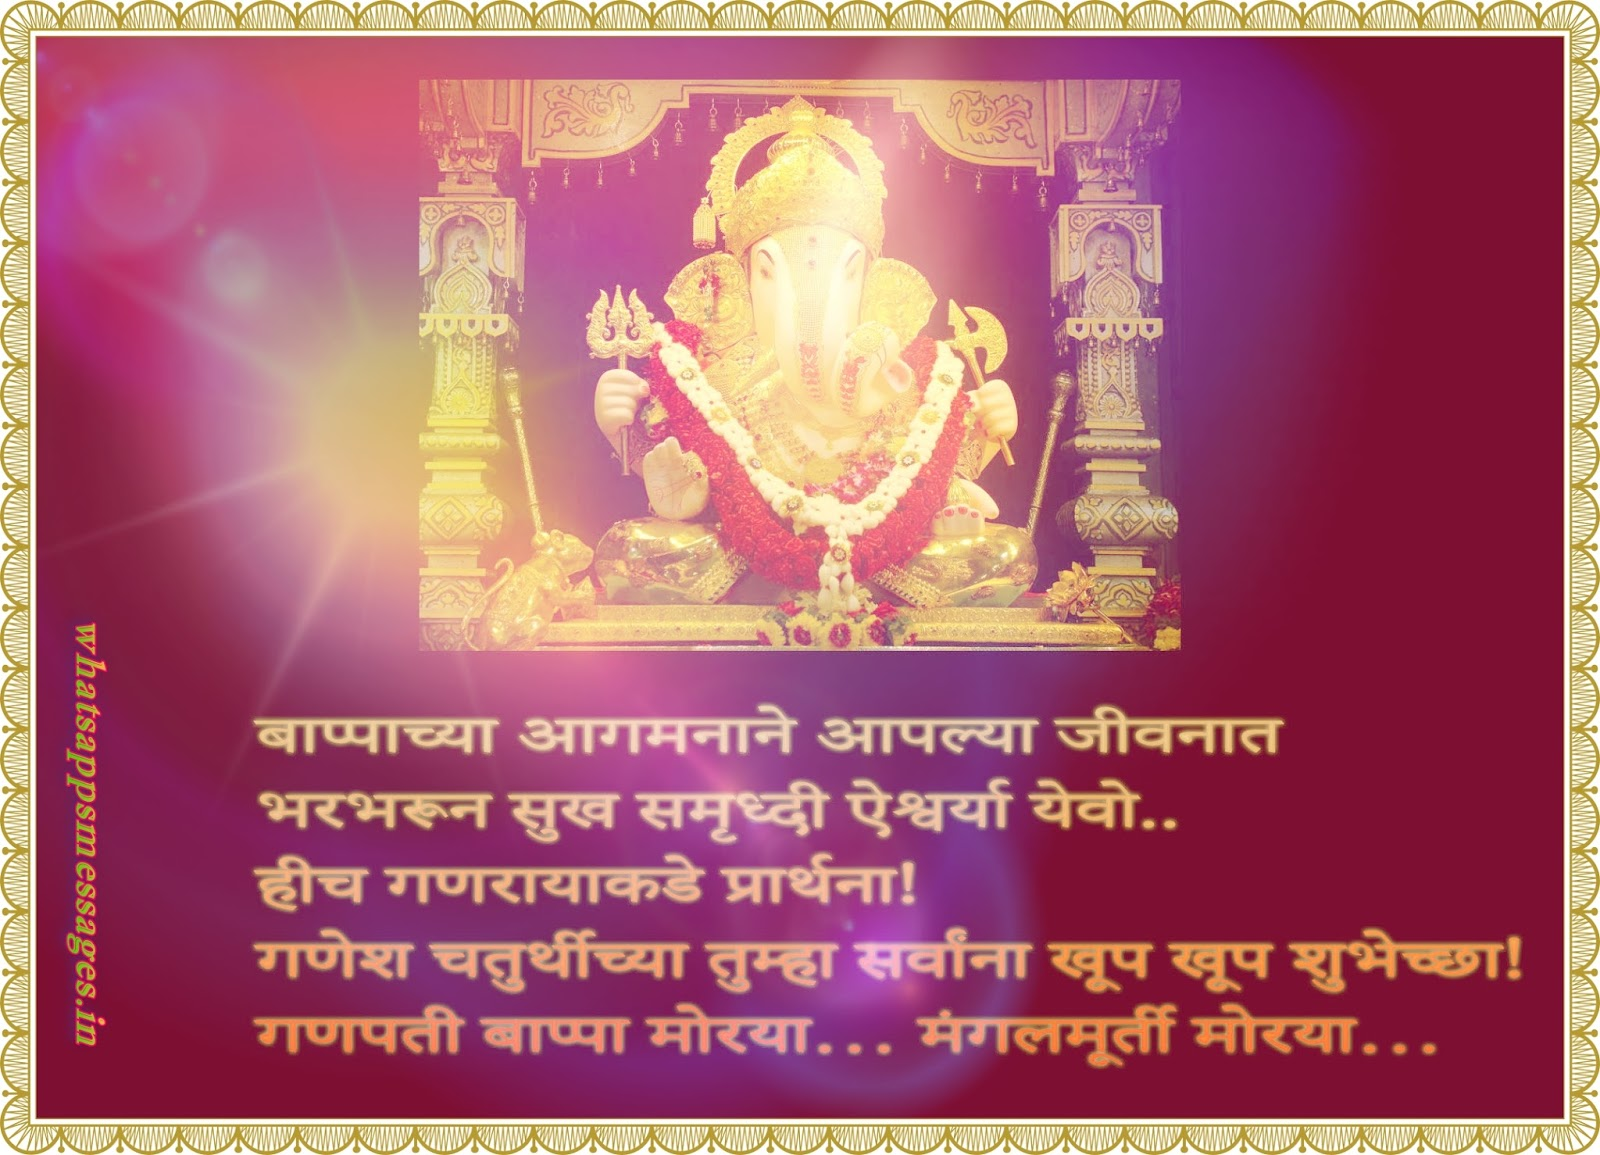 ganesha chaturthi sms wishes messages marathi best sms